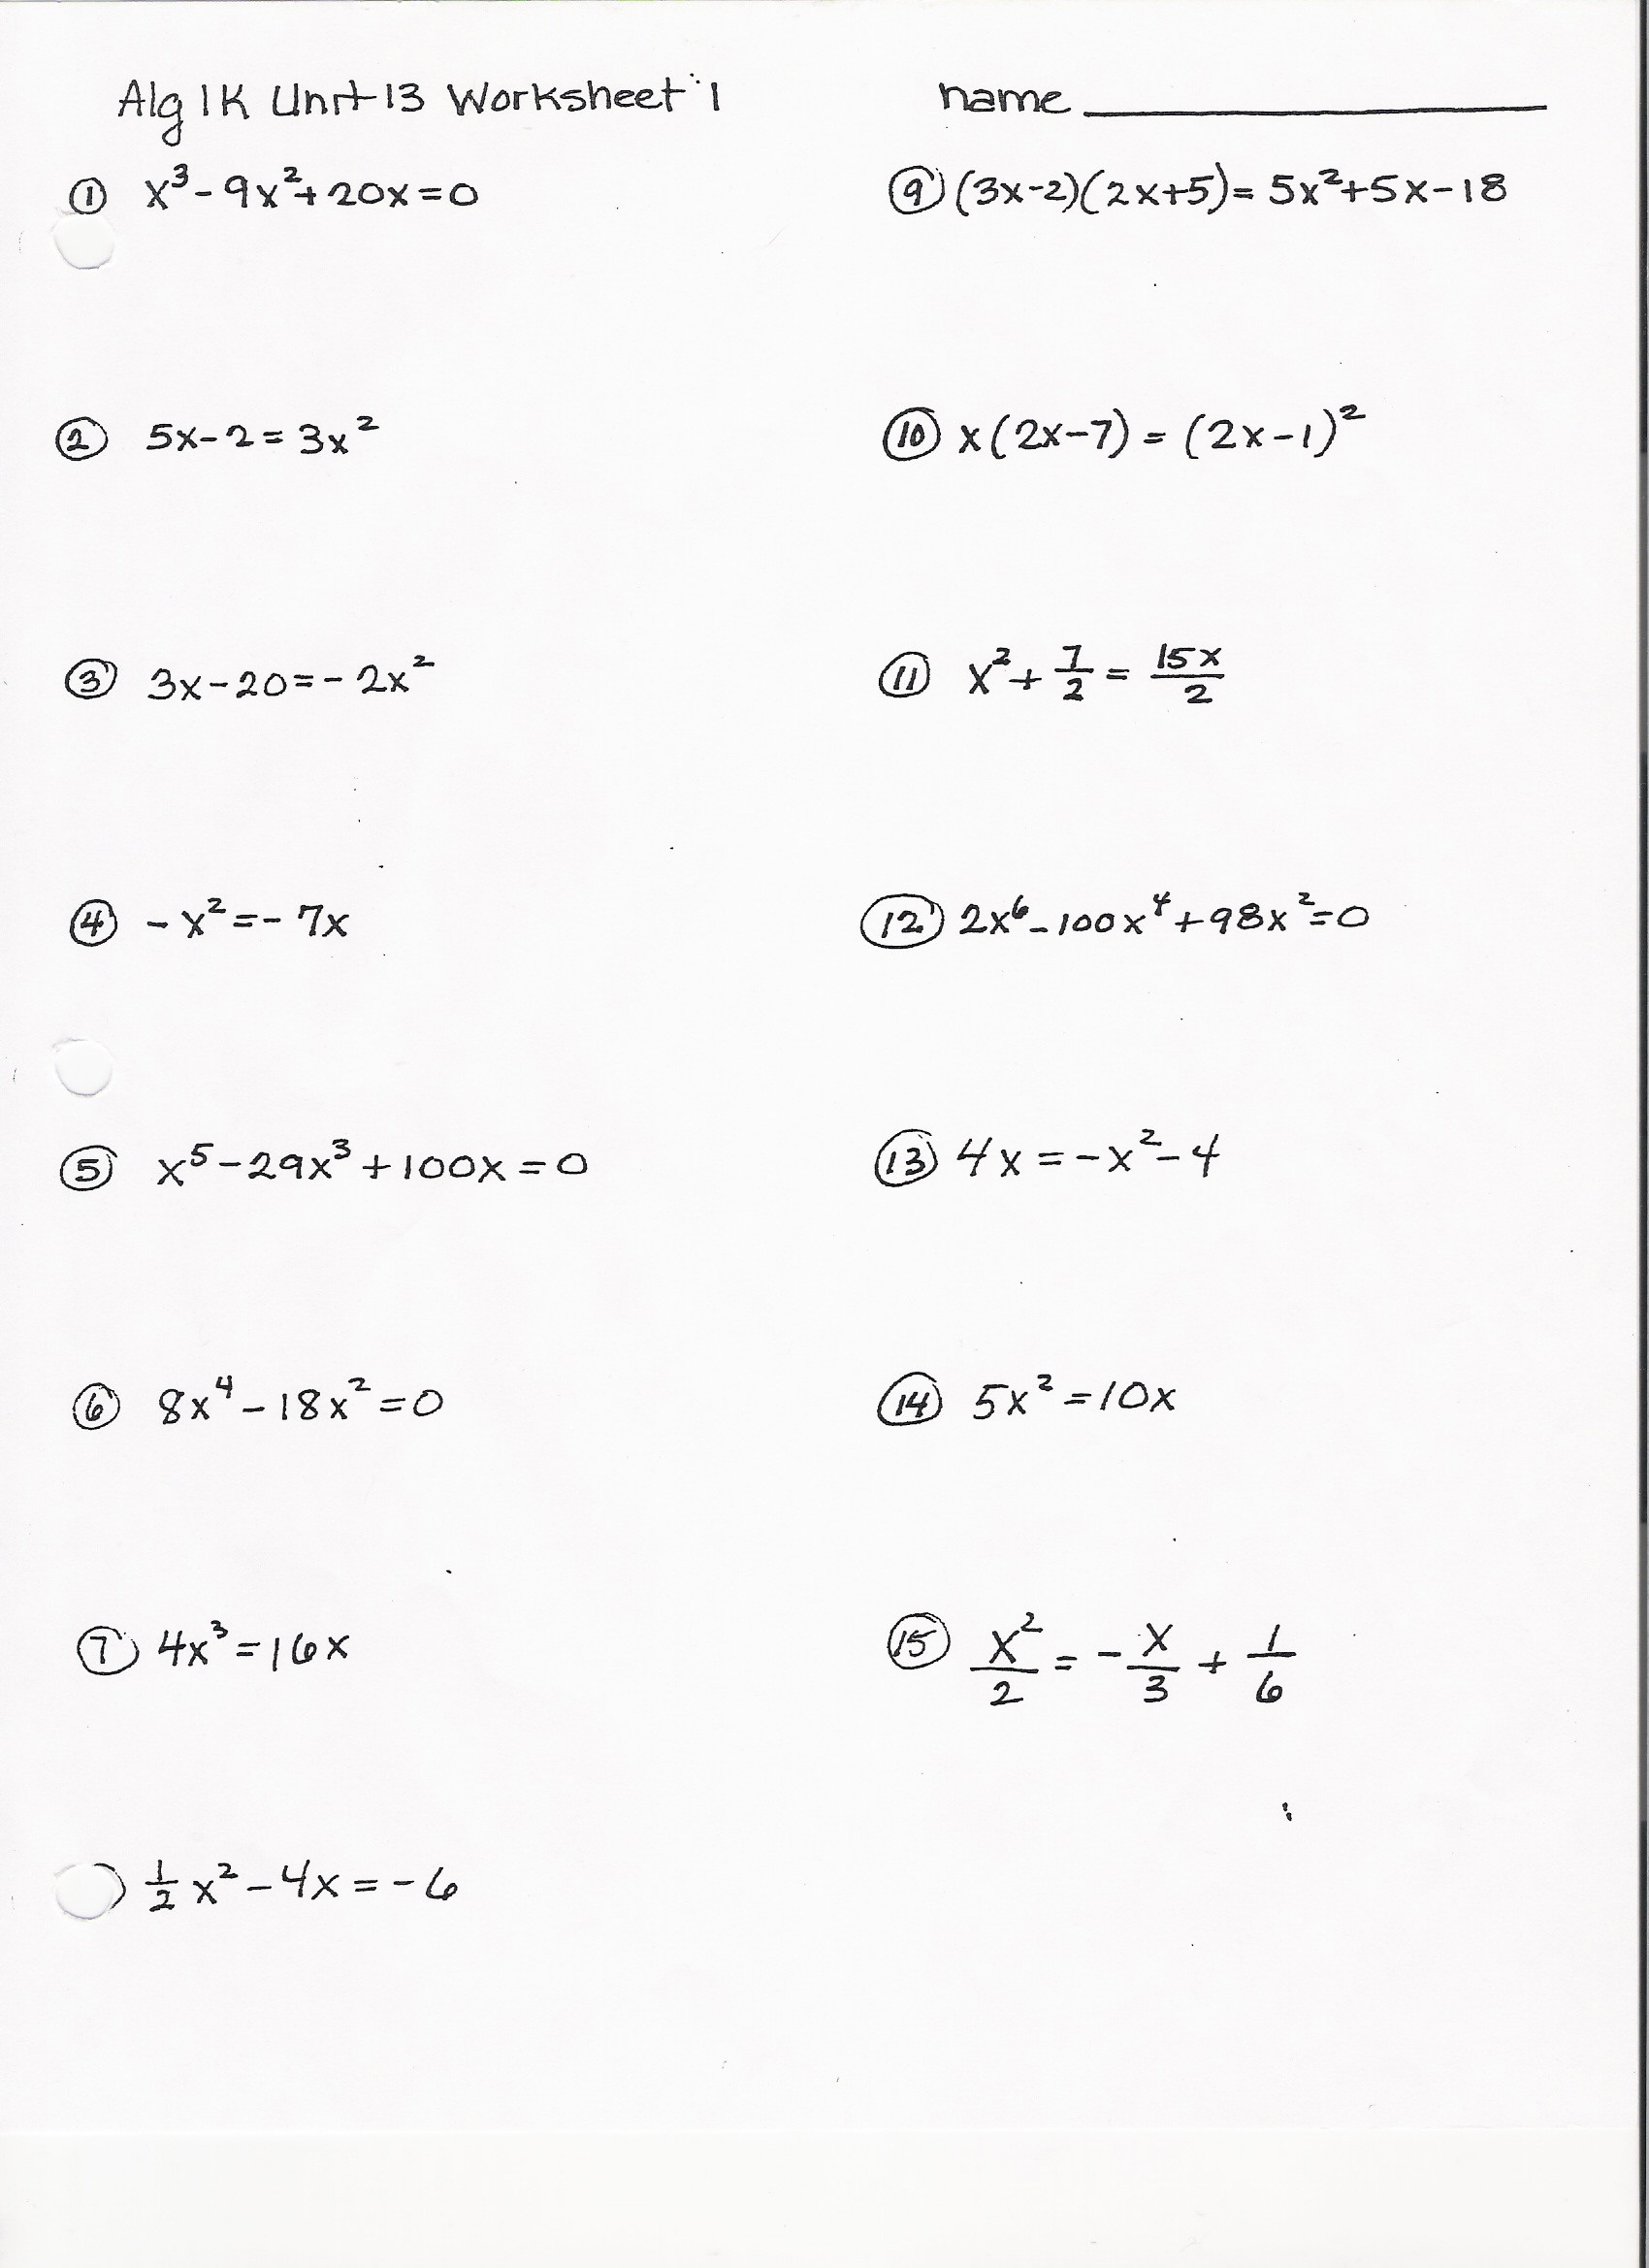 Factoring Worksheet Algebra 1 28 Algebra 1 Factoring Worksheet Worksheet Project List